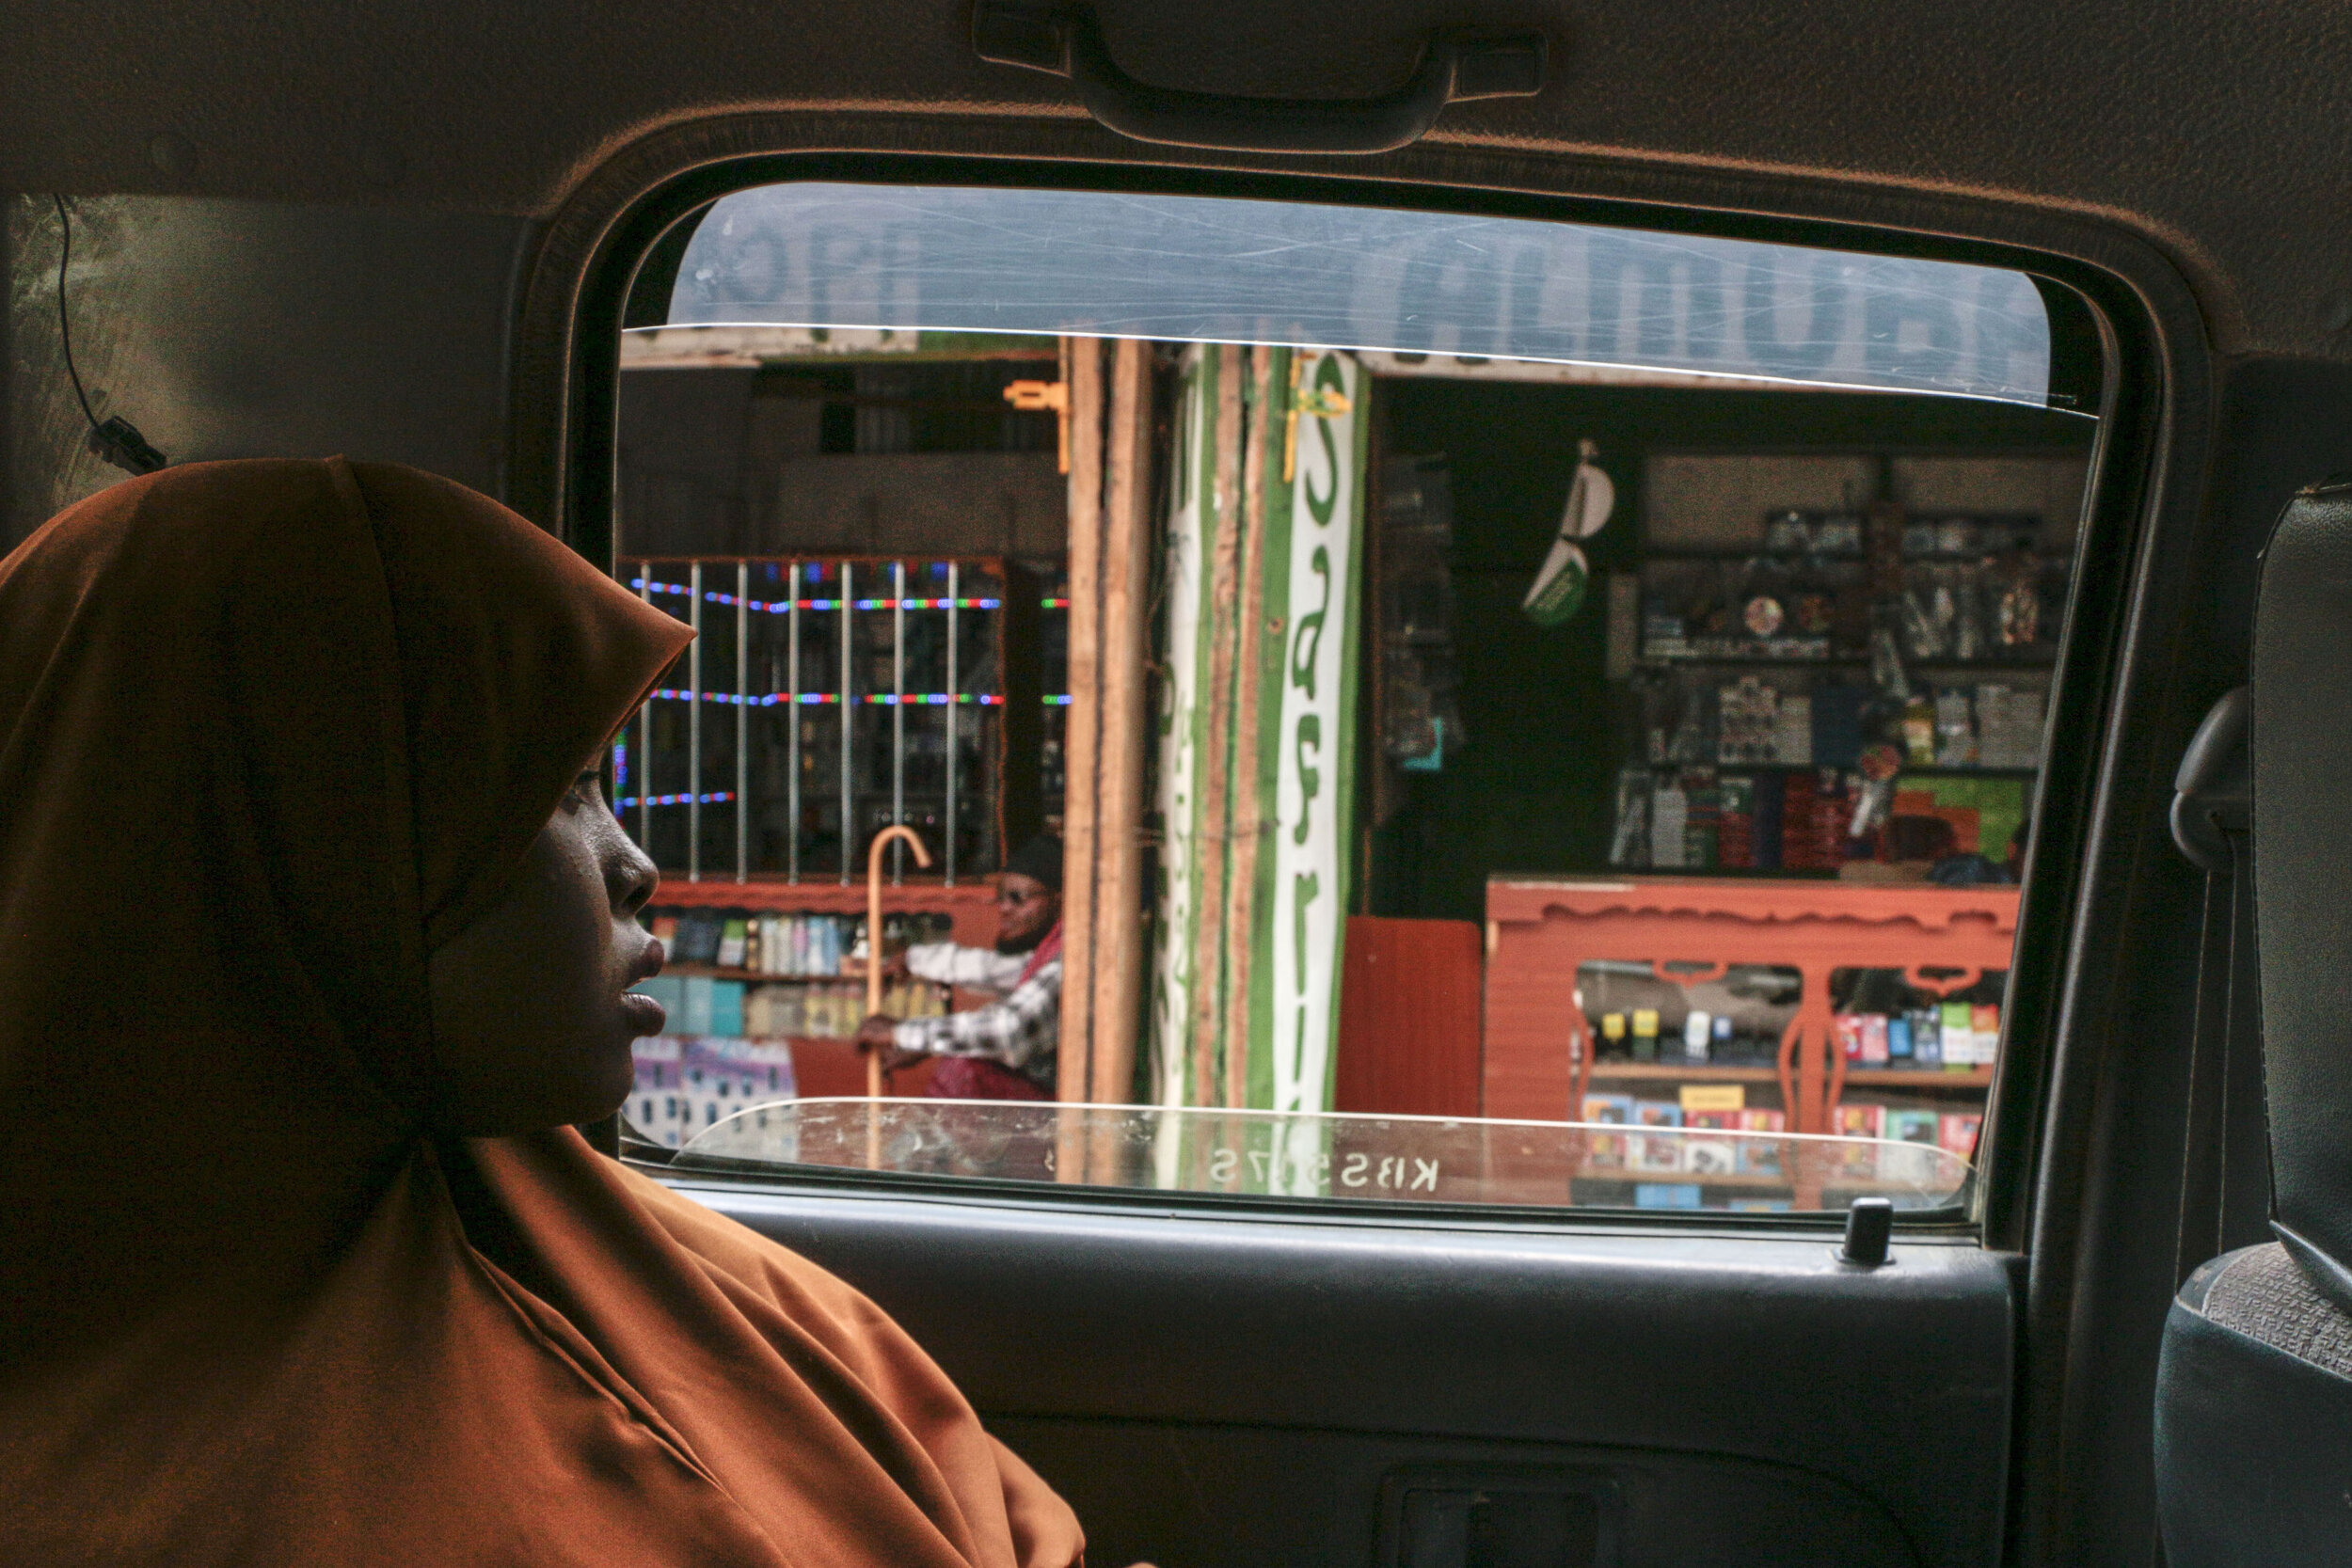 """Hamdi Kosar looks out the window while driving through the marketplace Aug. 19 at the Dagahaley Refugee Camp in Dadaab, Kenya. Many refugees have their own business and sell goods at the market place within the camp. """"It brings back memories,"""" Kosar said."""